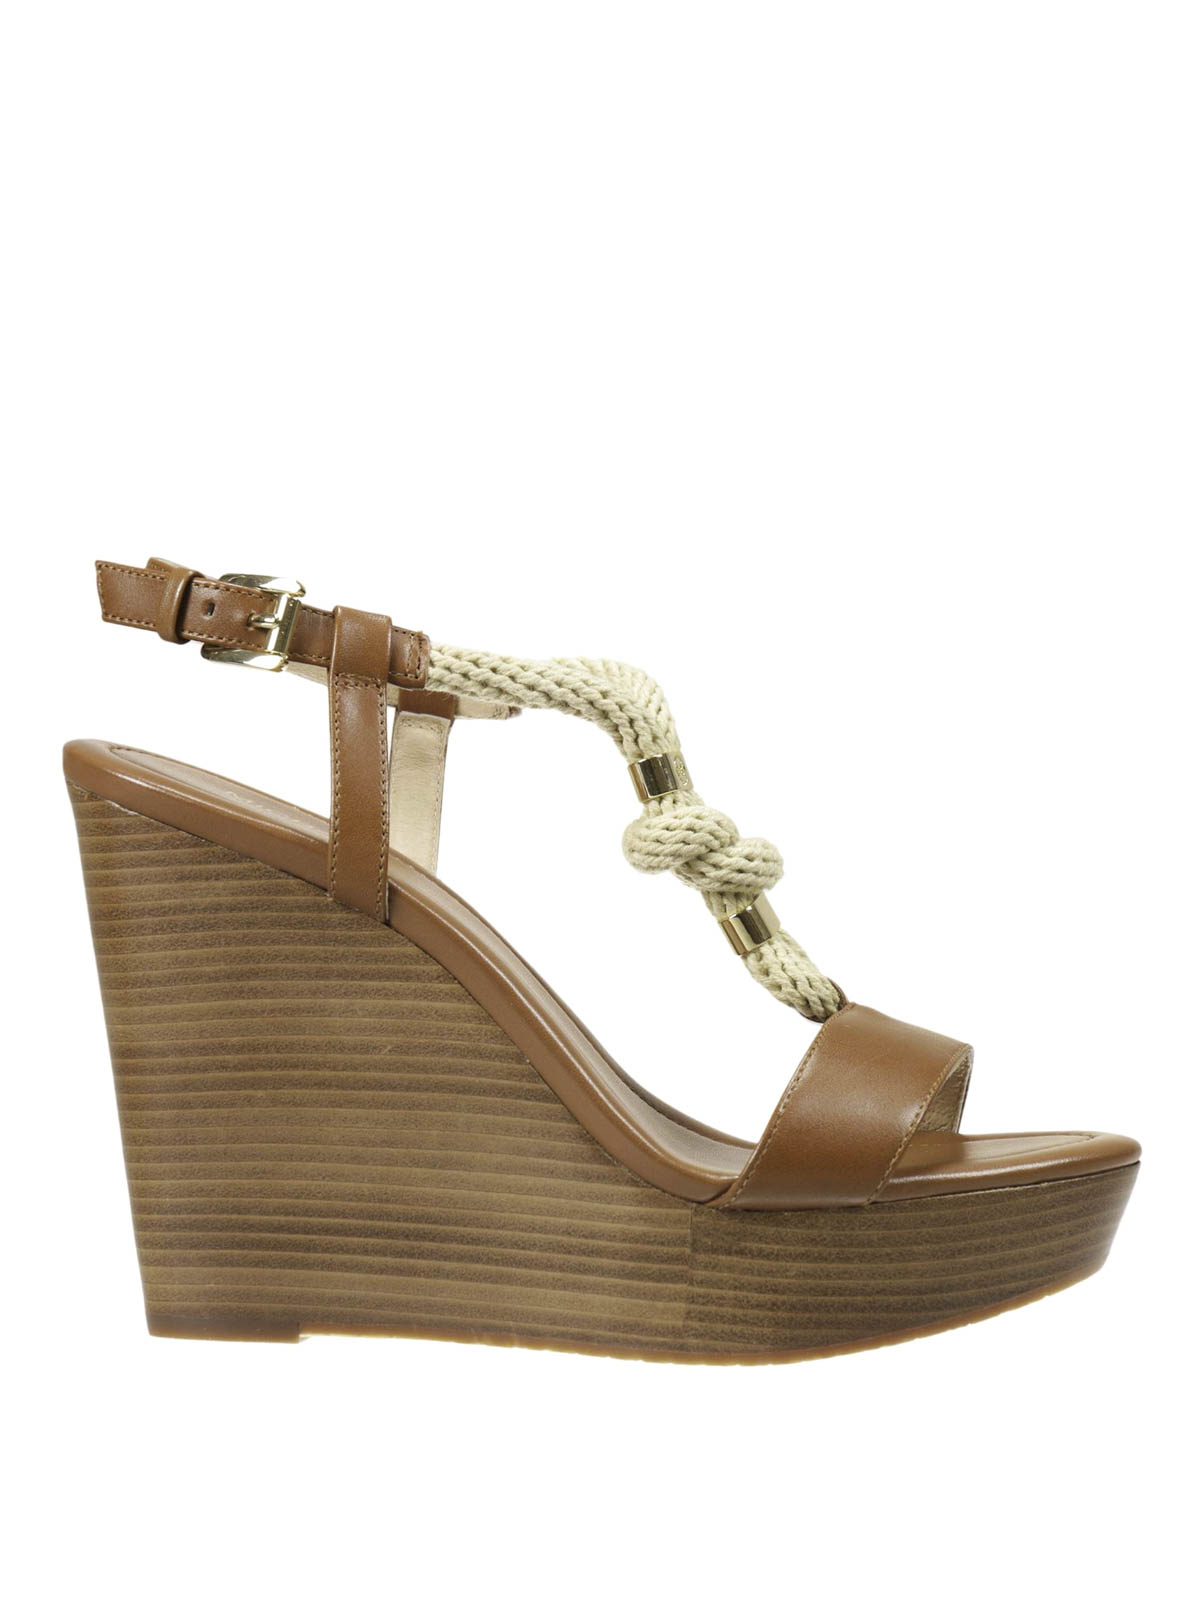 Michael Kors - Holly wedge sandals